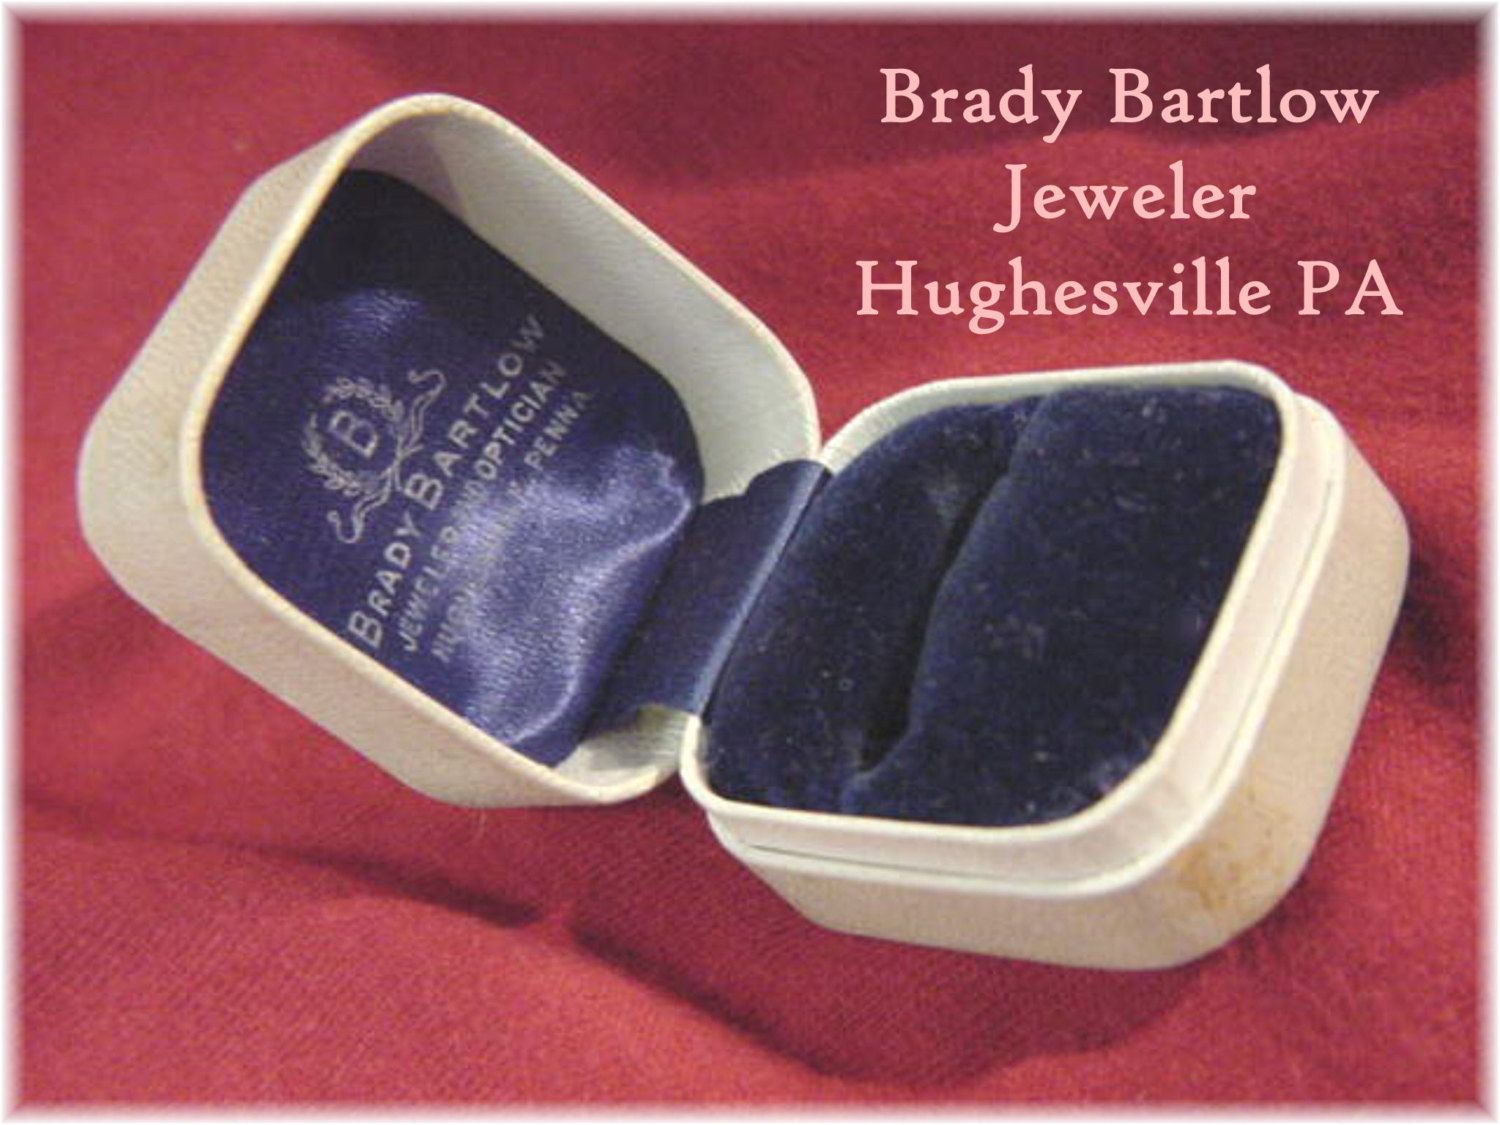 Vintage Ring Presentation Display Box 1930s - Bartlow Jewelry Store Hughesville PA - Engagement Wedding Ring - Estate Antique  FREE SHIPPING